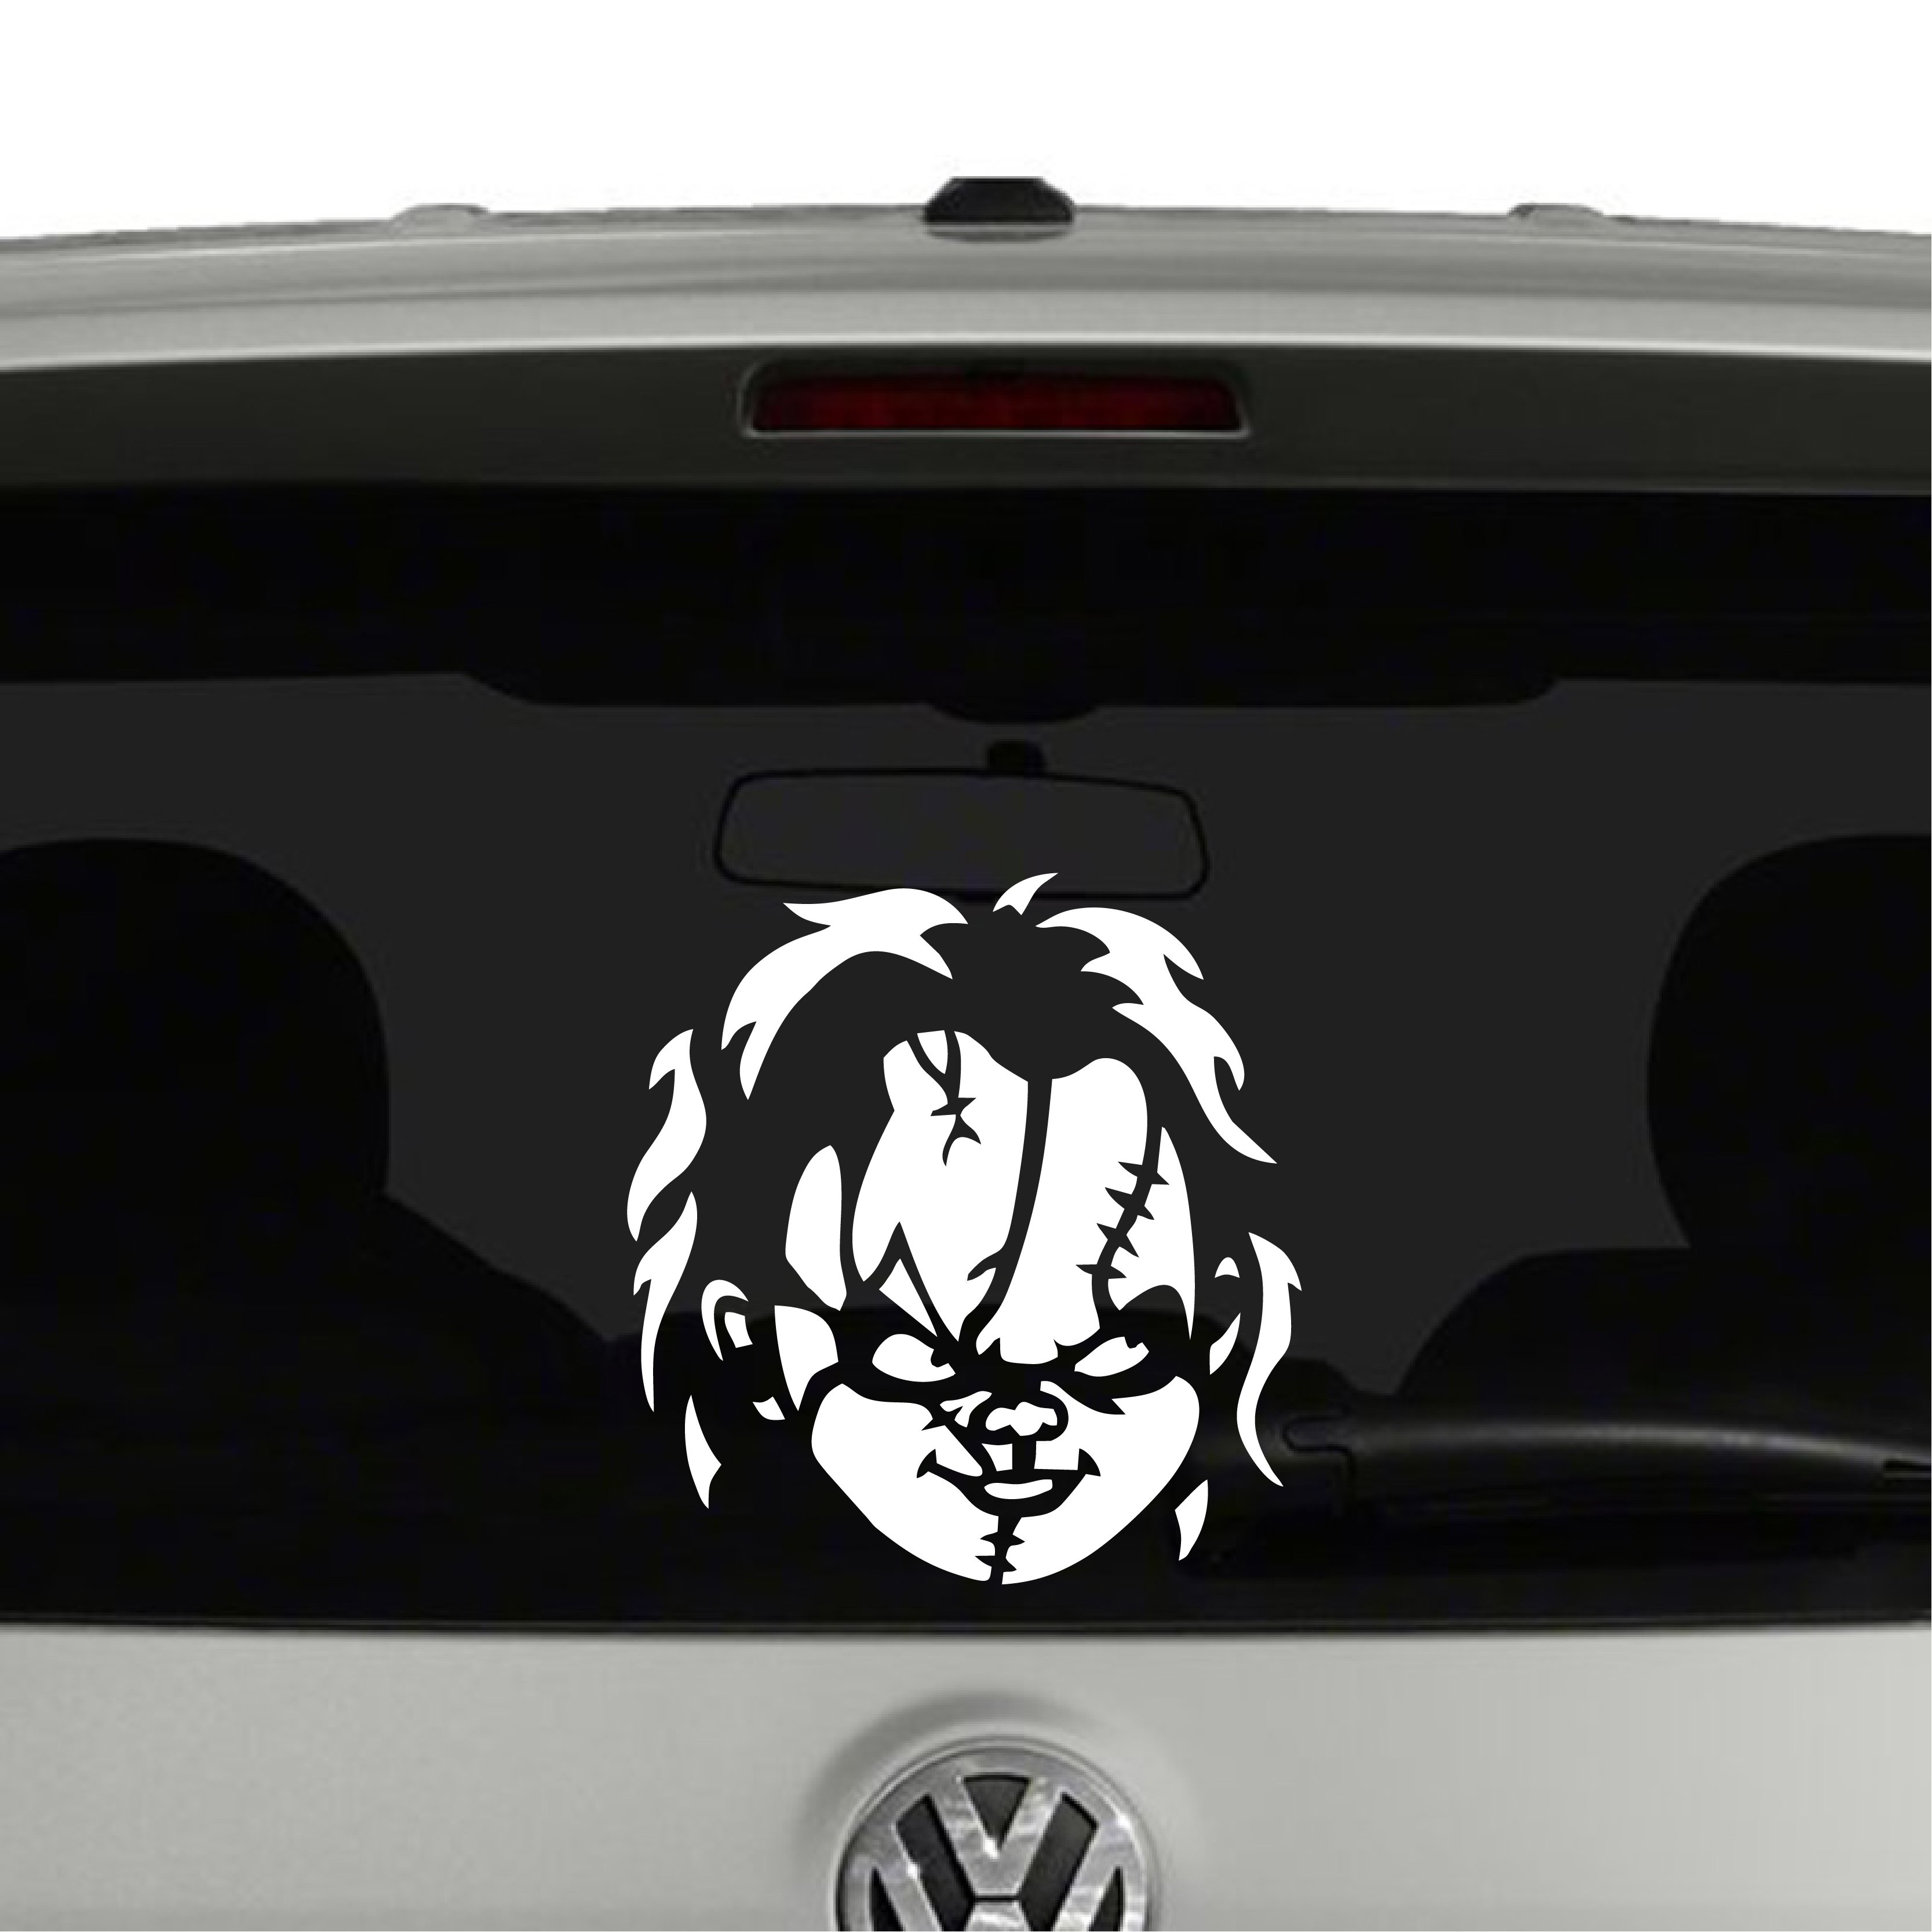 Chucky Child's Play Inspired Vinyl Decal Sticker